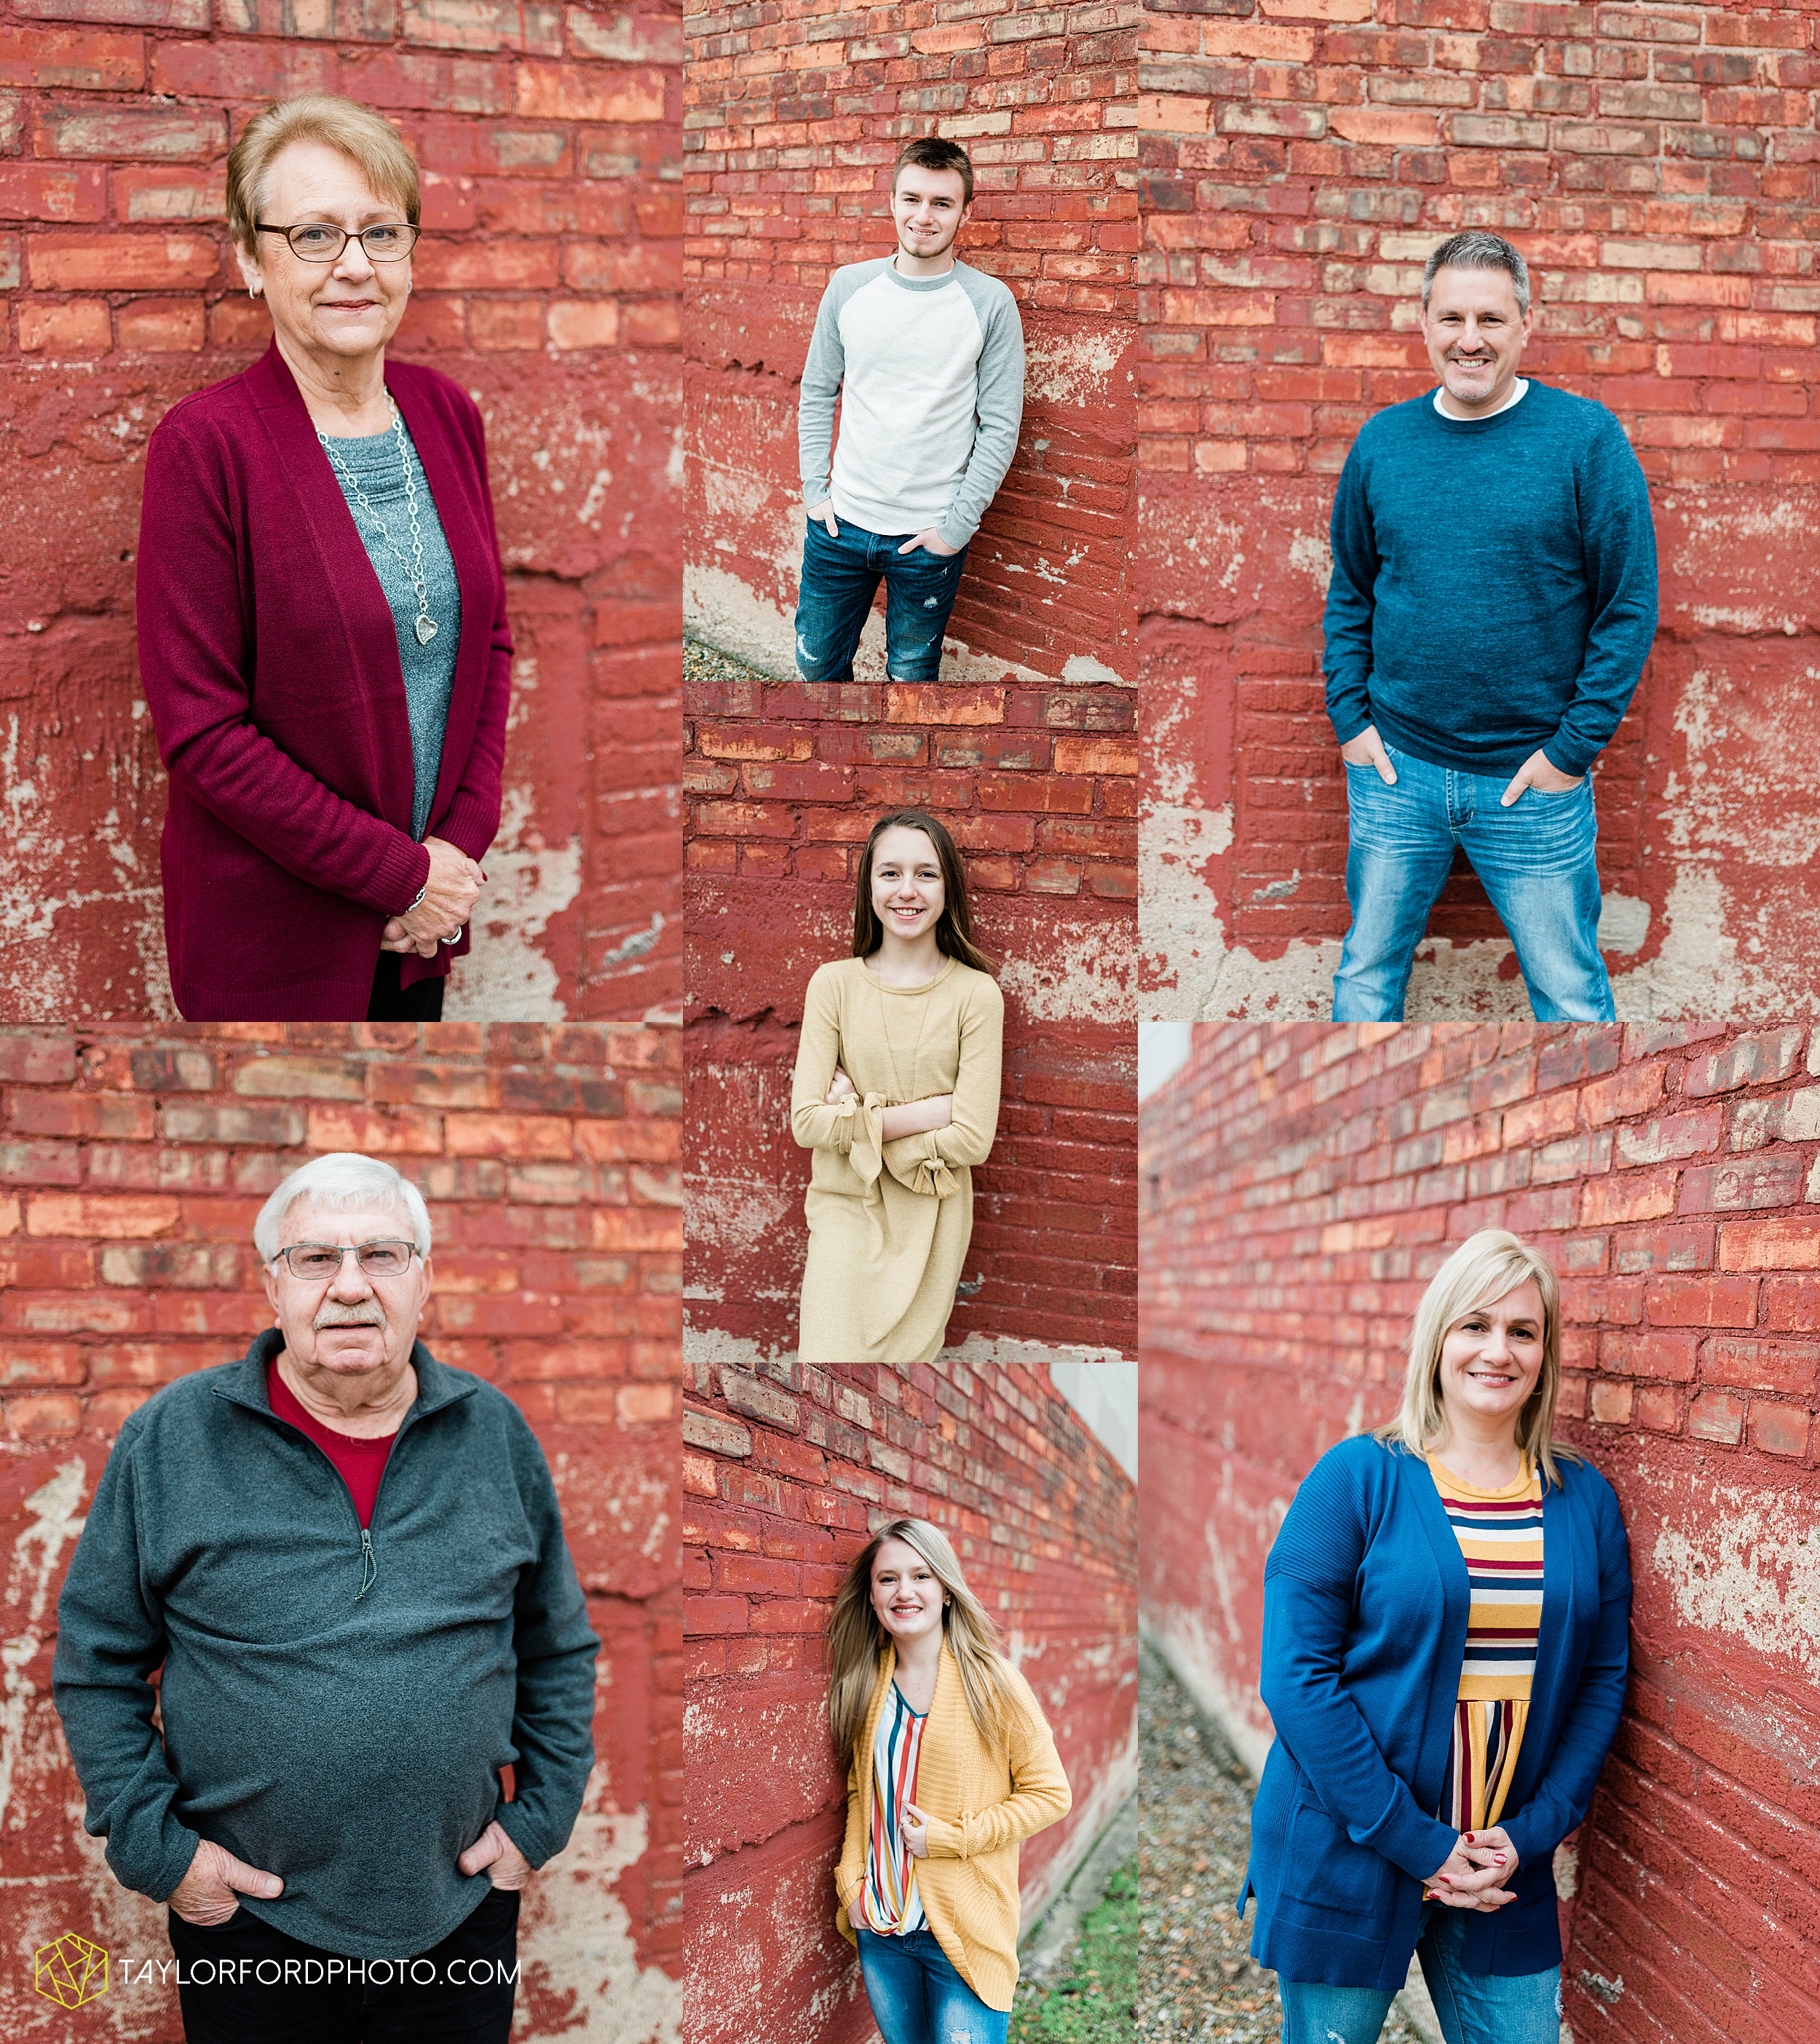 thompson-extended-family-van-wert-ohio-downtown-family-photography-taylor-ford-hirschy-photographer_2063.jpg